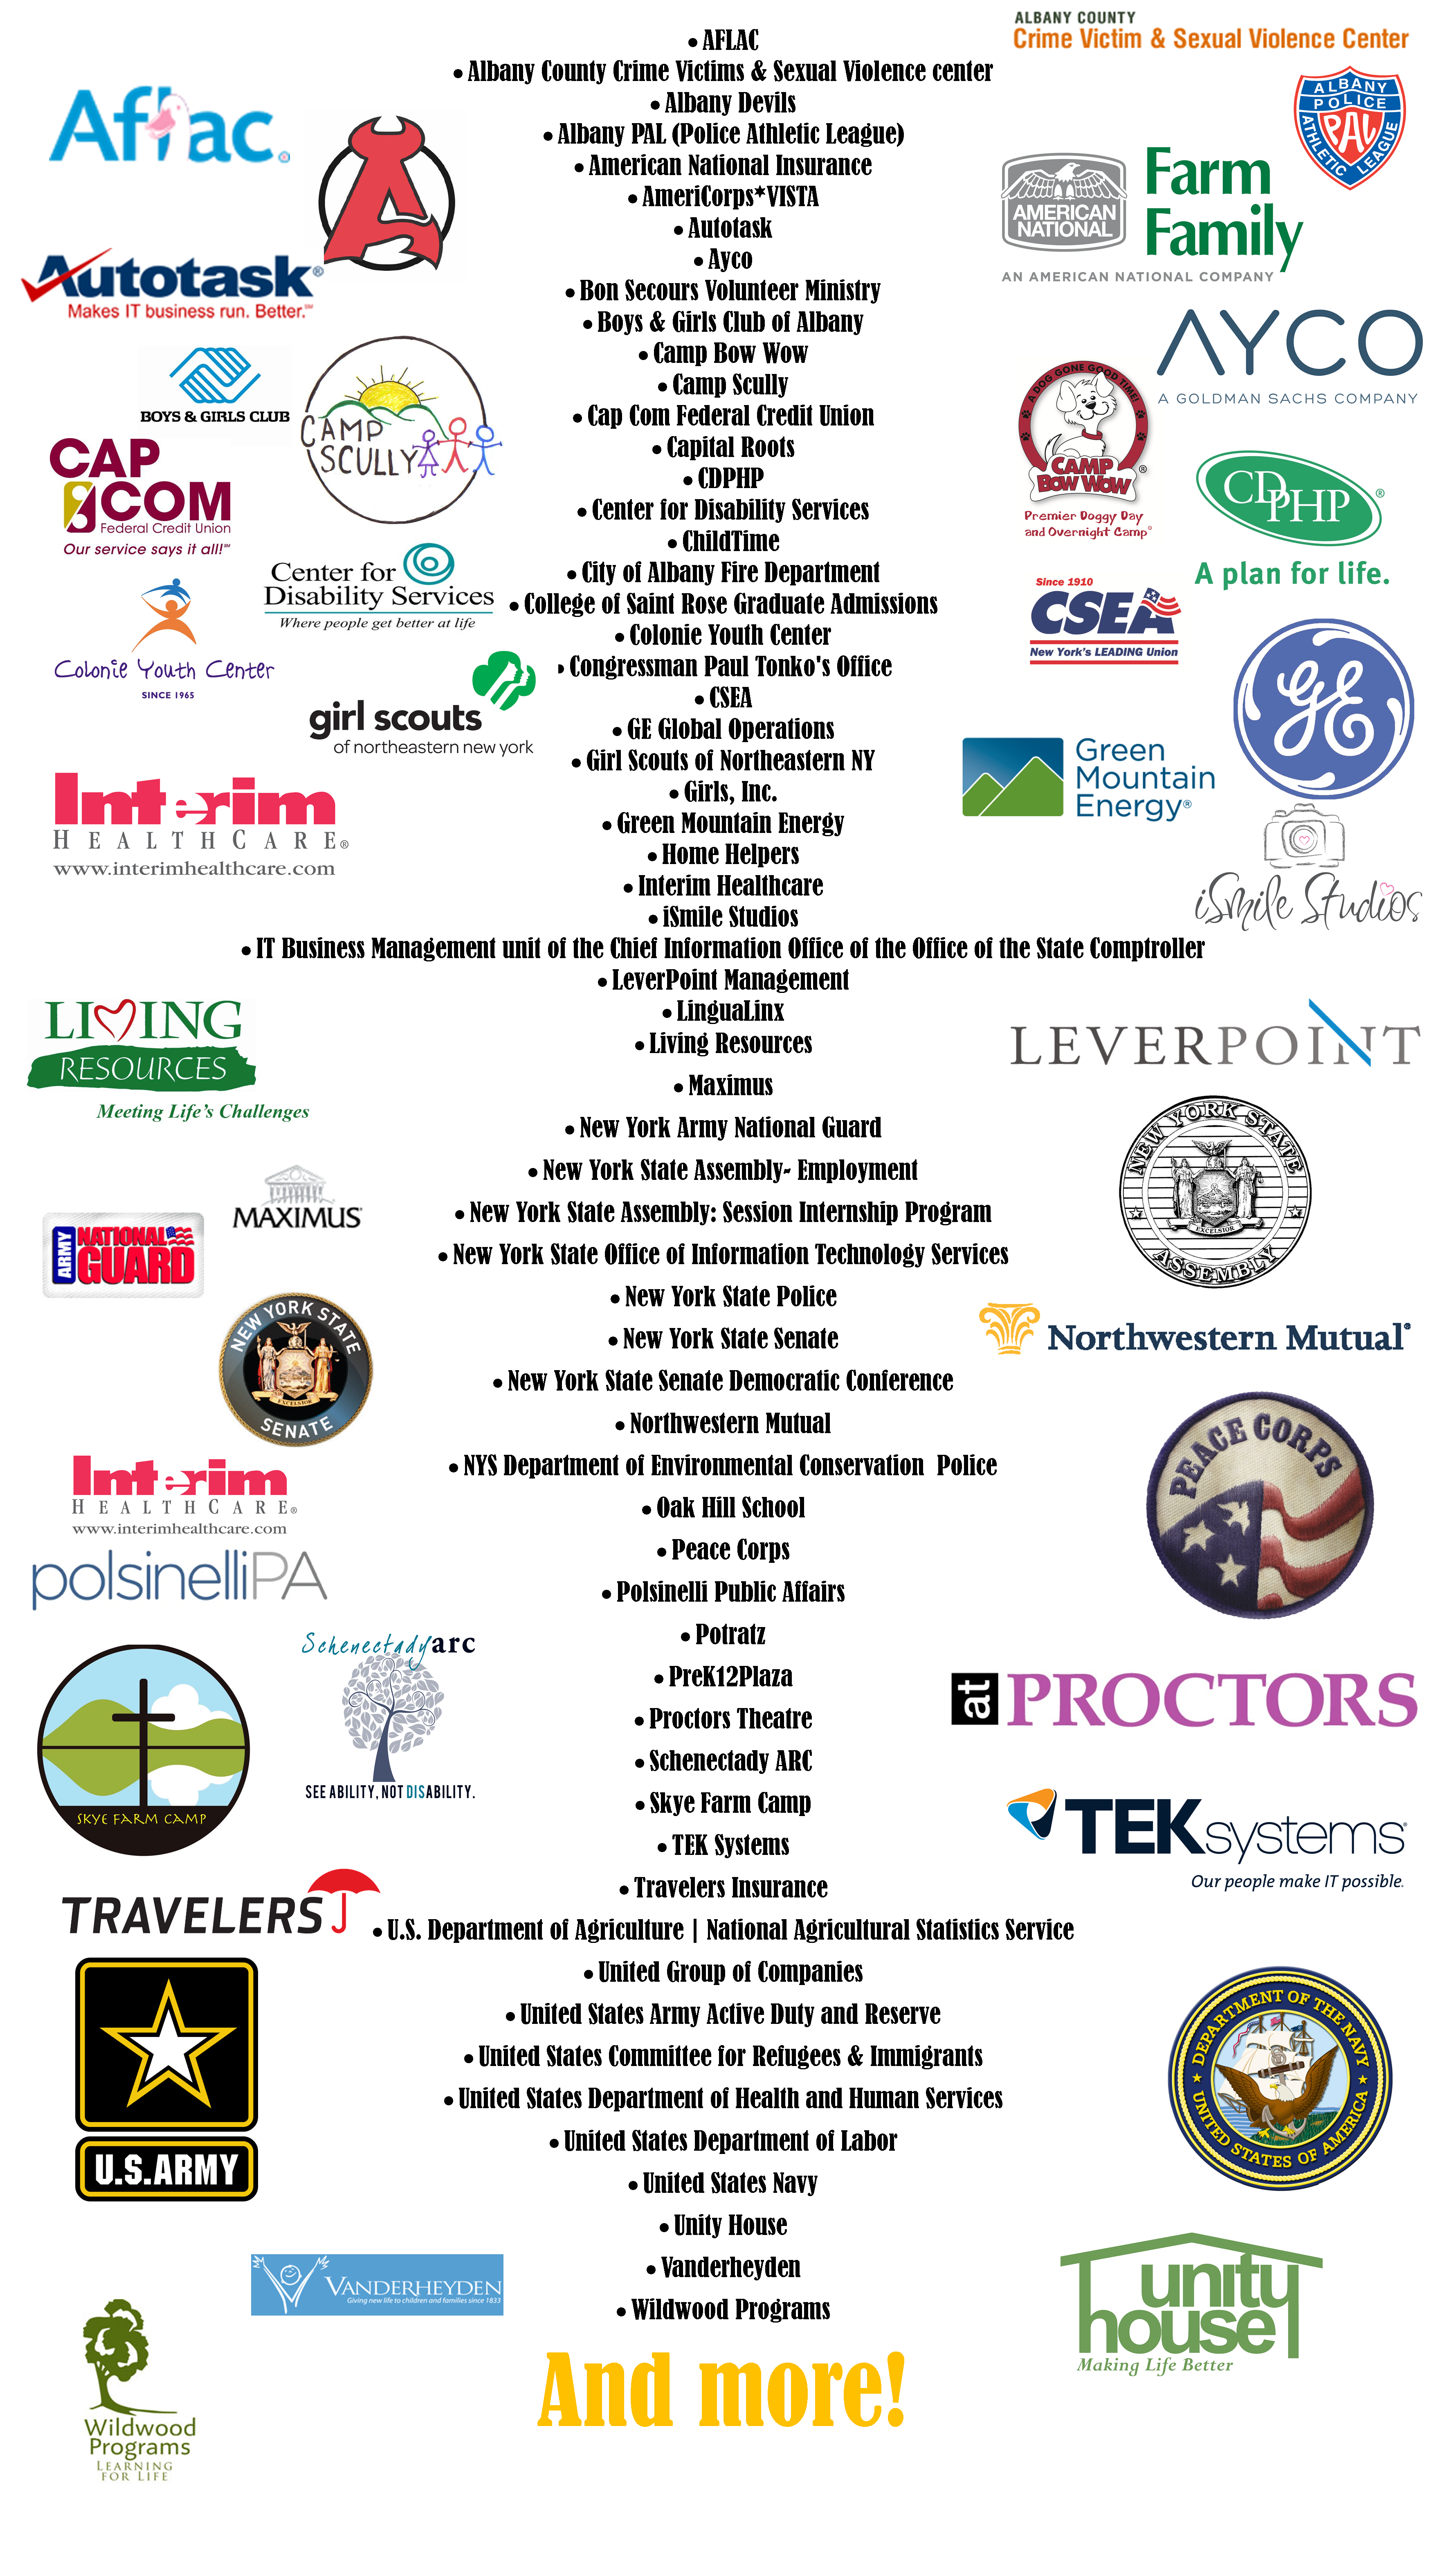 Employers the college of saint rose just a few examples of employers who have participated in the college of saint rose recruiting program falaconquin